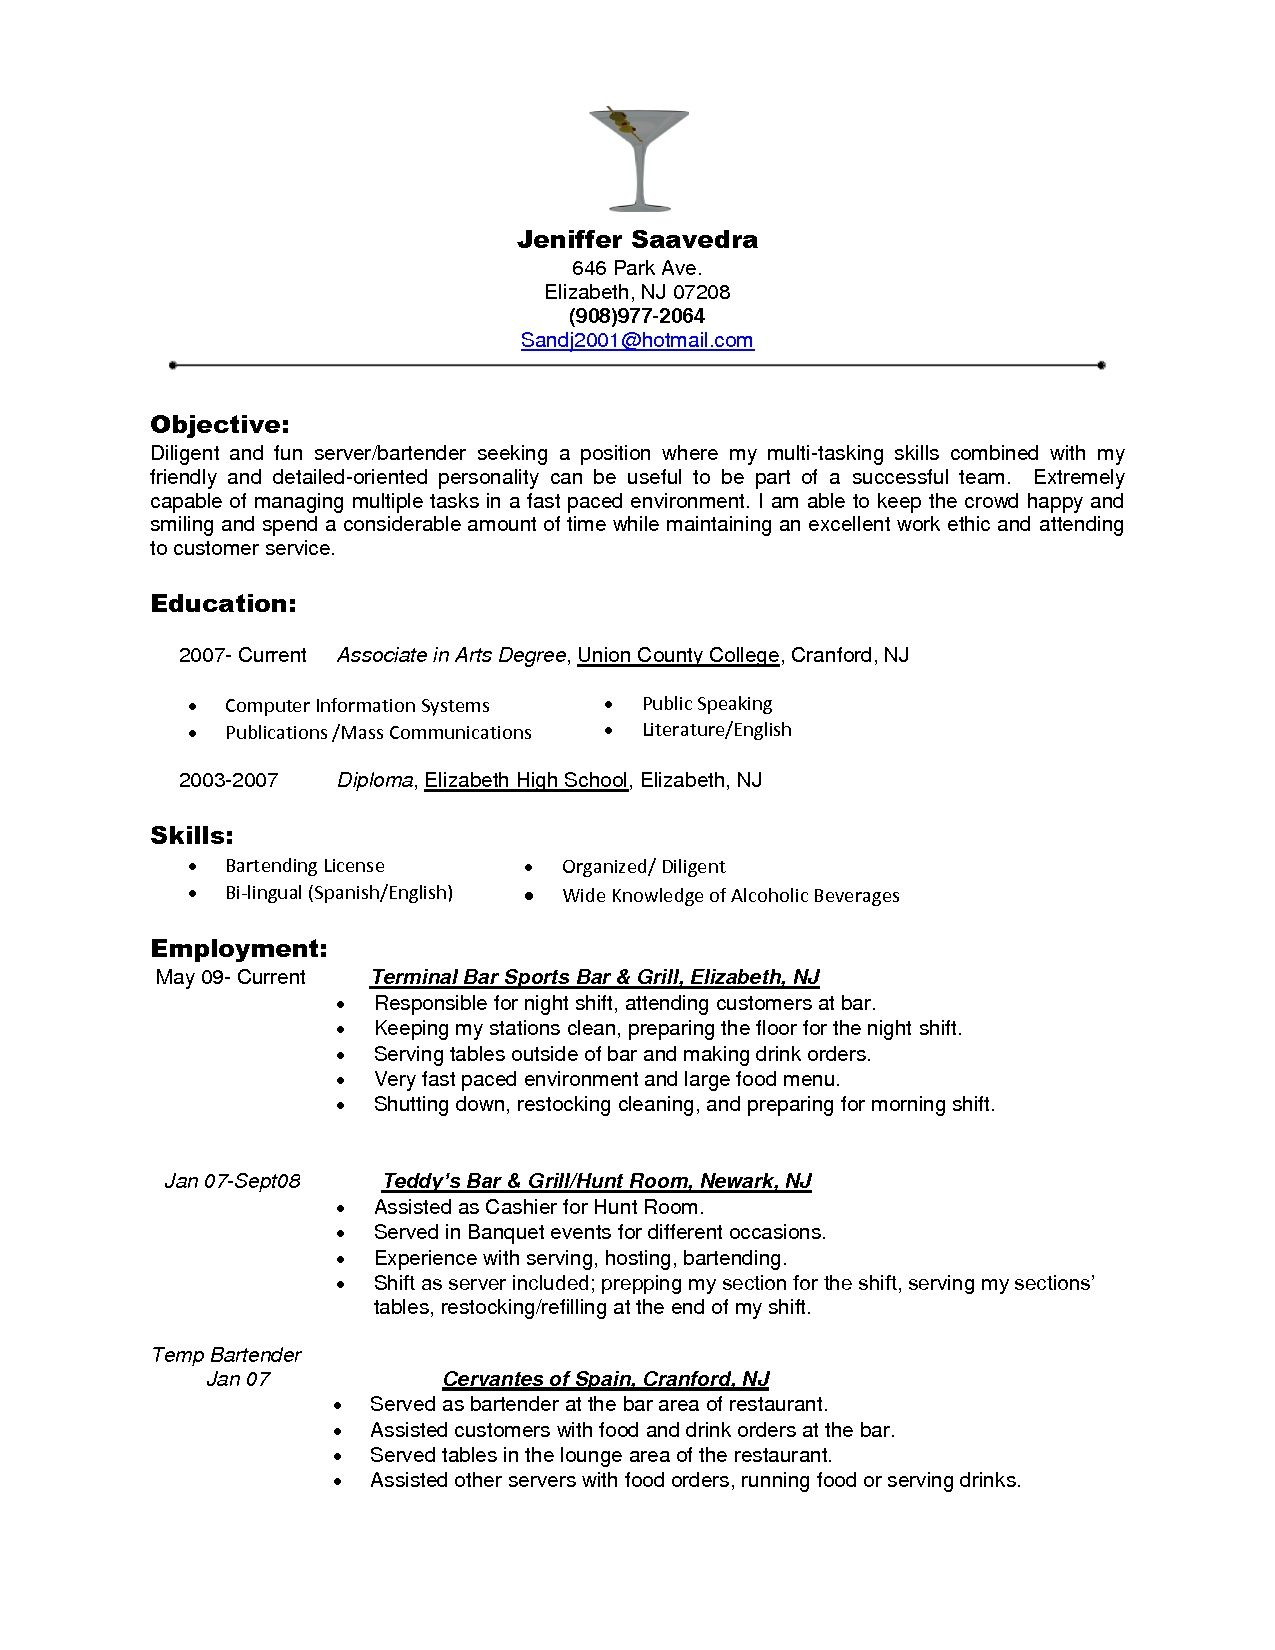 Beautiful Bartender Objectives Resume   Bartender Objectives Resume Will Give Ideas  And Strategies To Develop Your Own And Do You Need An Objective On A Resume